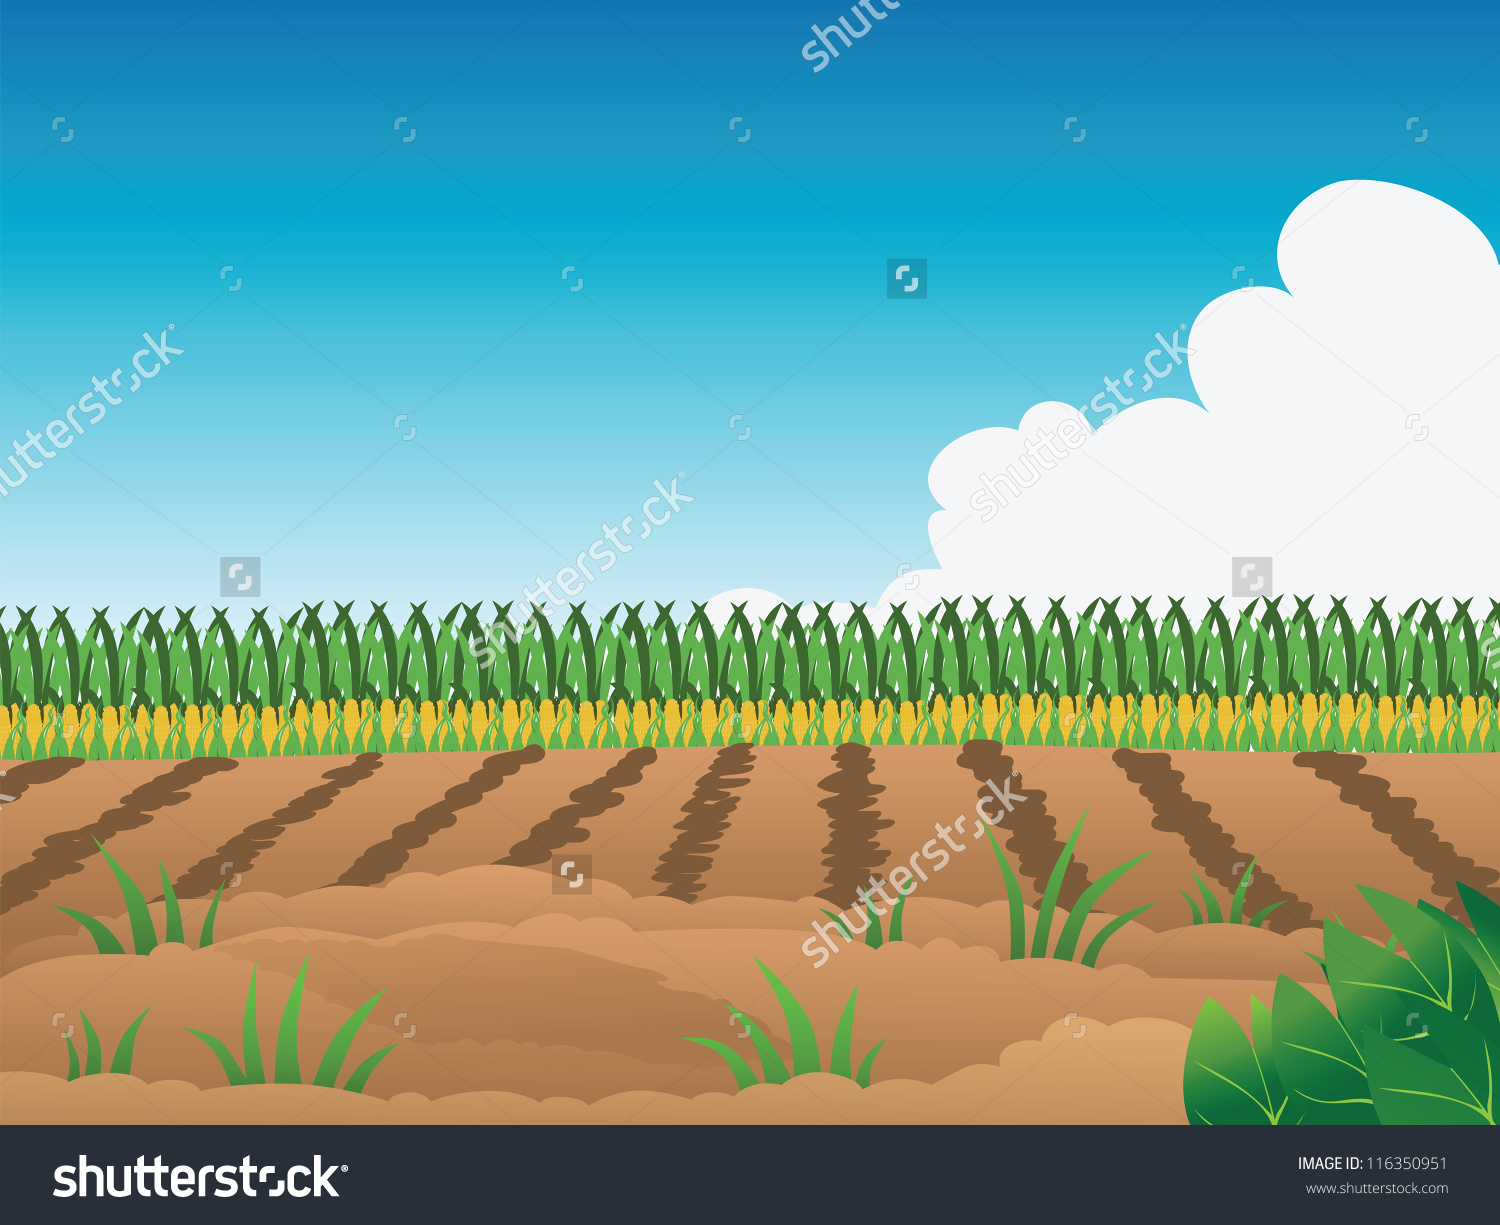 People cropping in fields clipart.